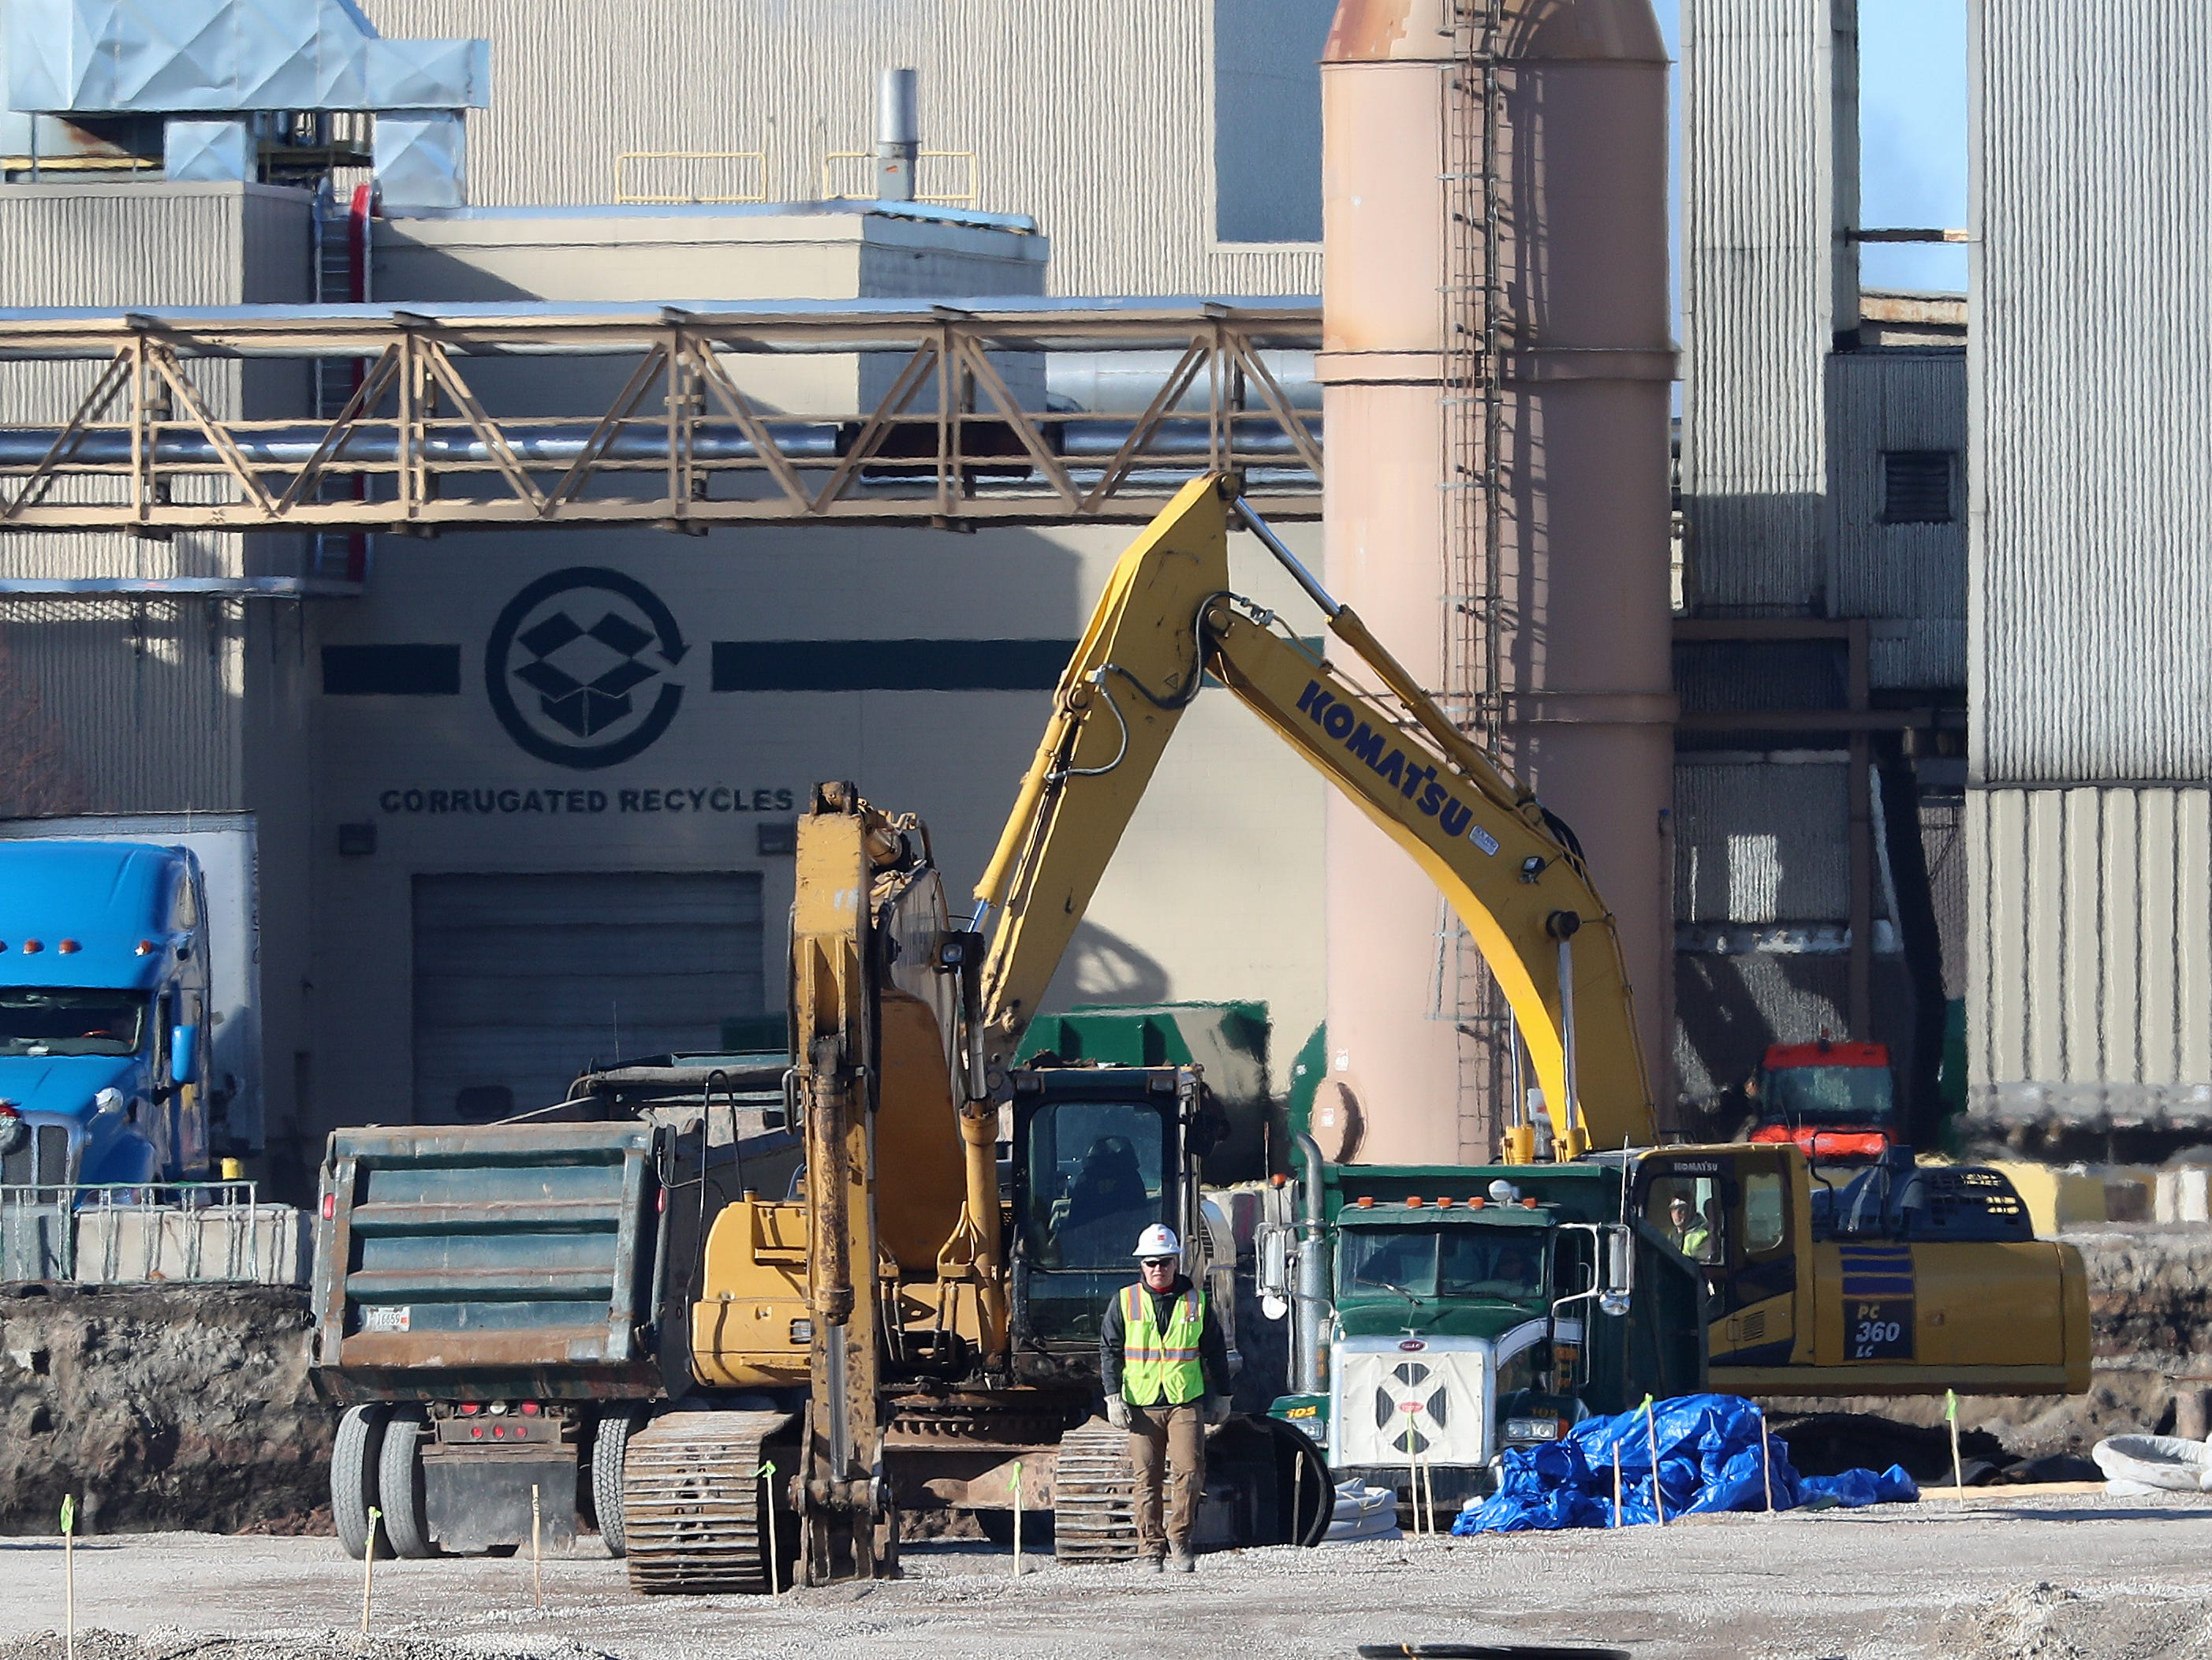 The construction site of the Green Bay Packaging mill off Quincy Street Monday, December 17, 2018 in Green Bay, Wis. The $580 million plant expansion is expected to retain 600 jobs and add another 200 jobs in the future.